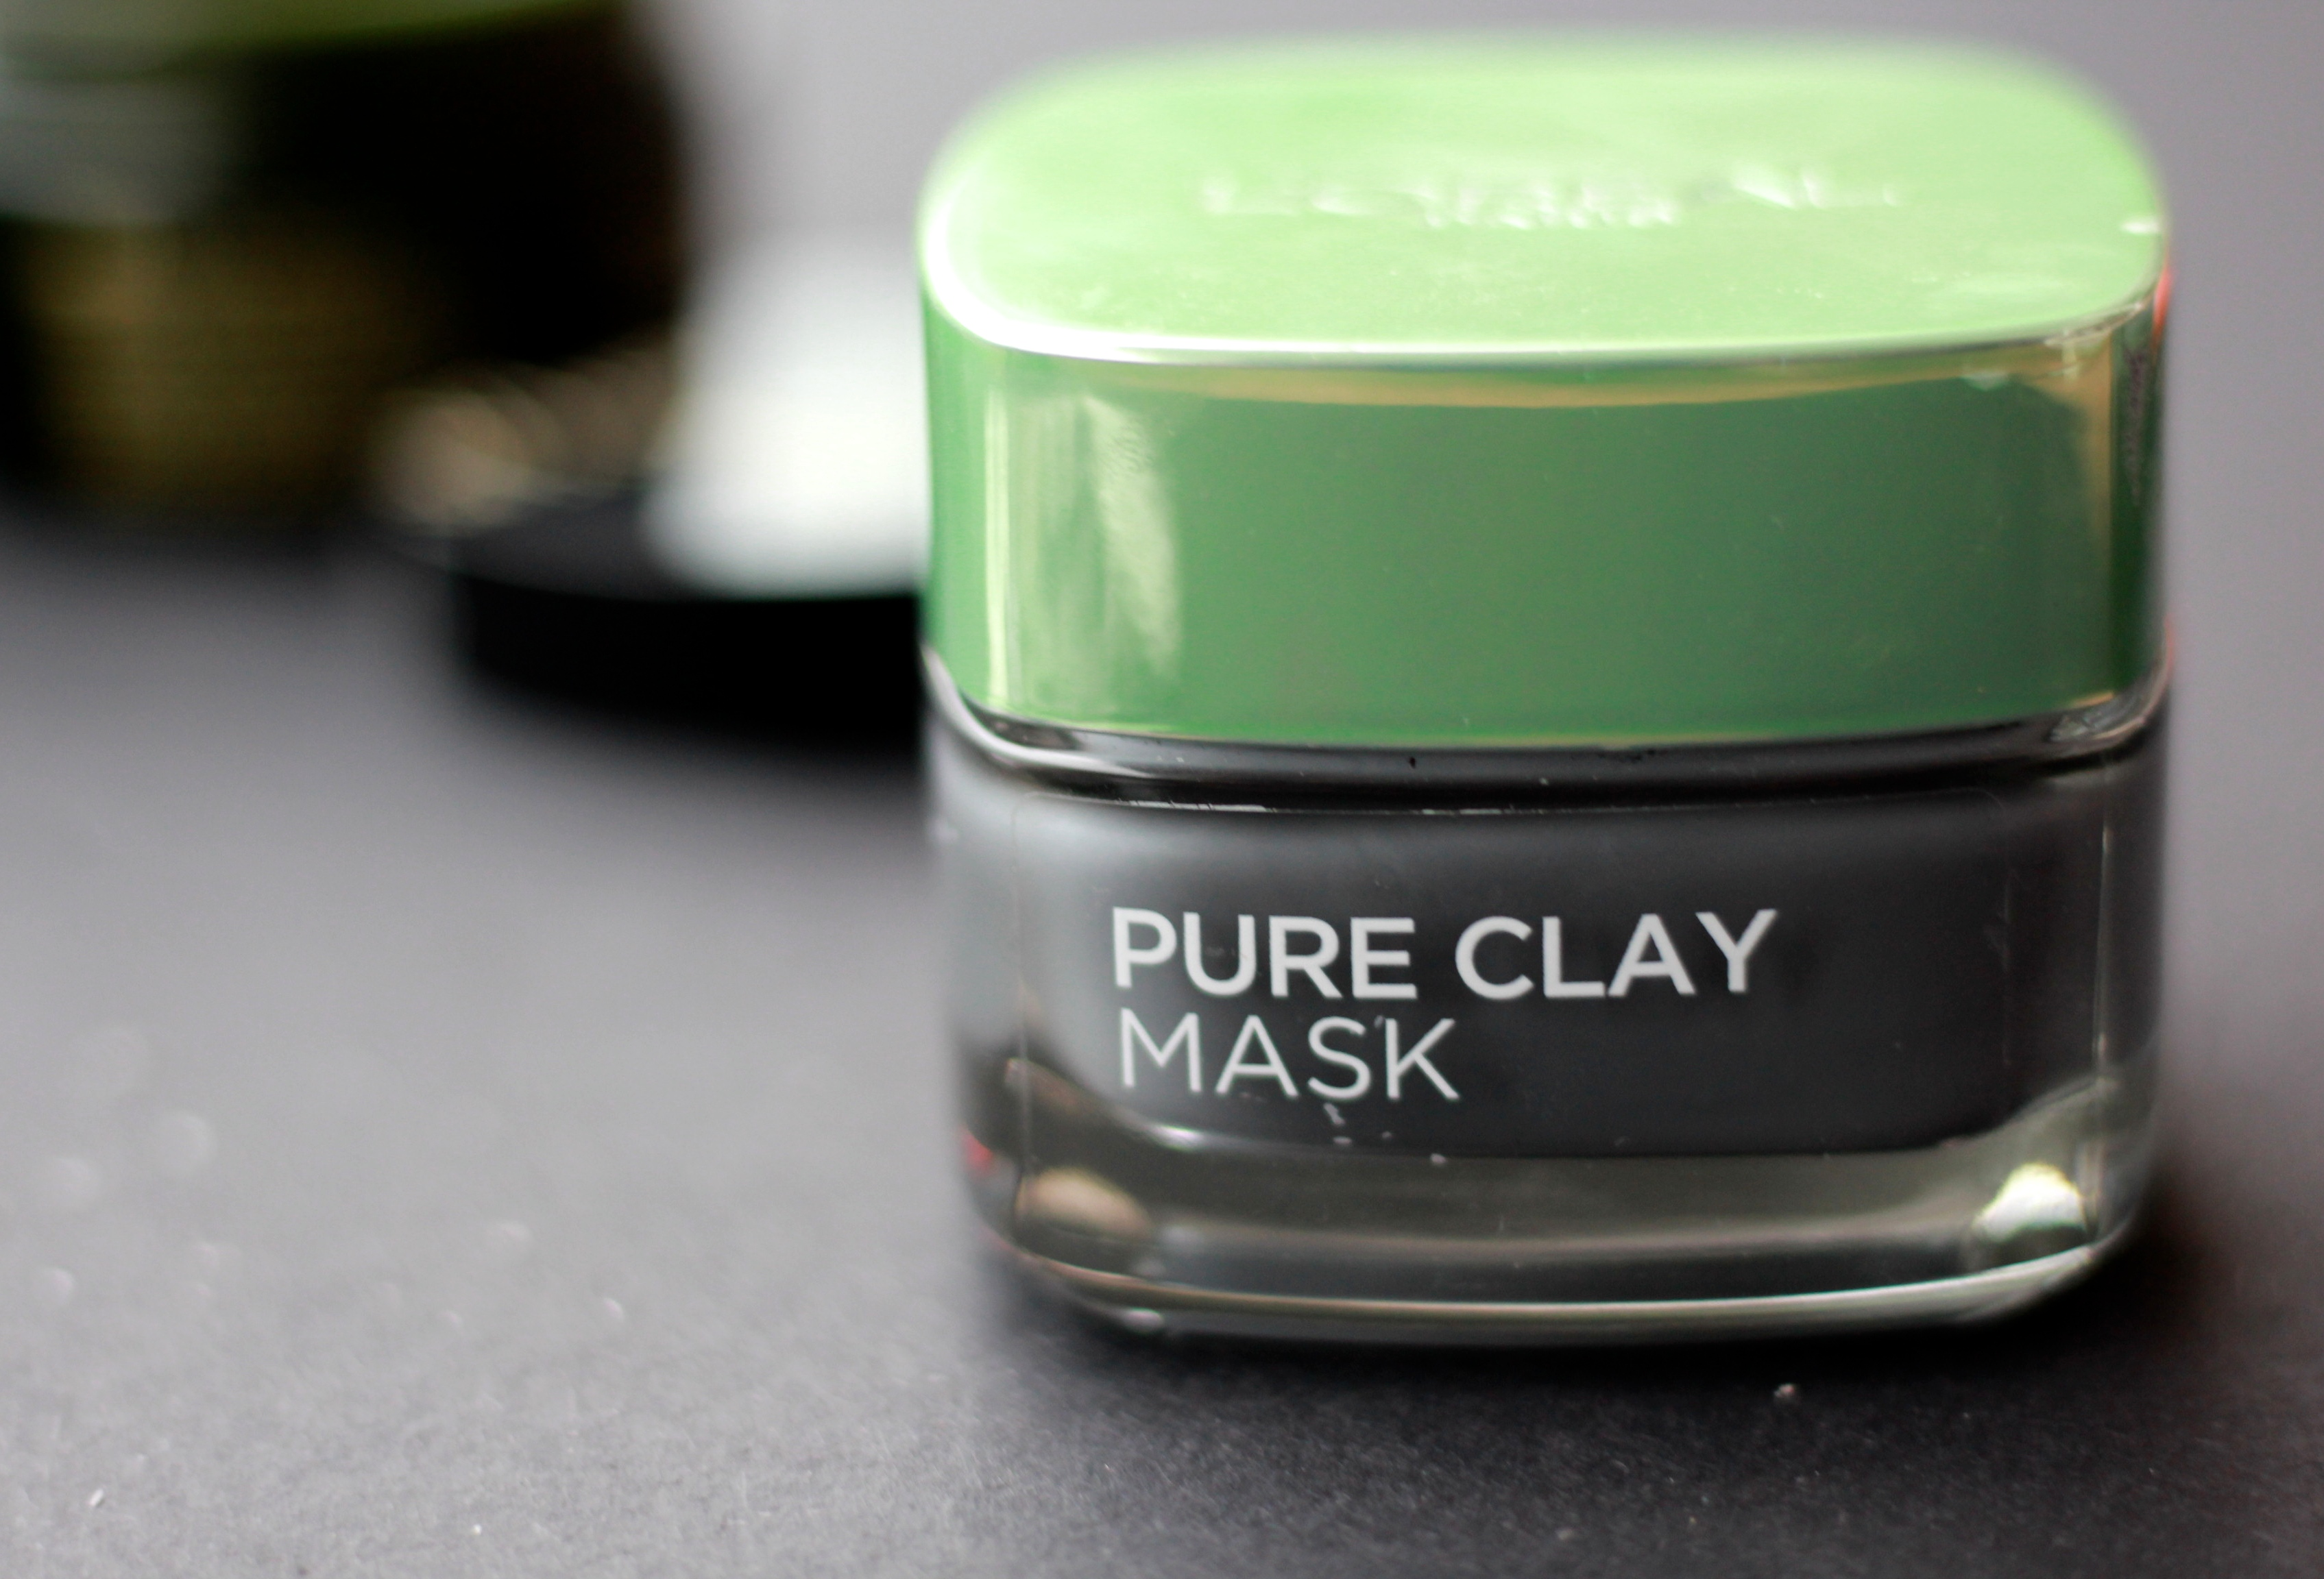 L'OREAL PARIS Pure Clay Mask: Detoxifying & Brightening Charcoal Mask